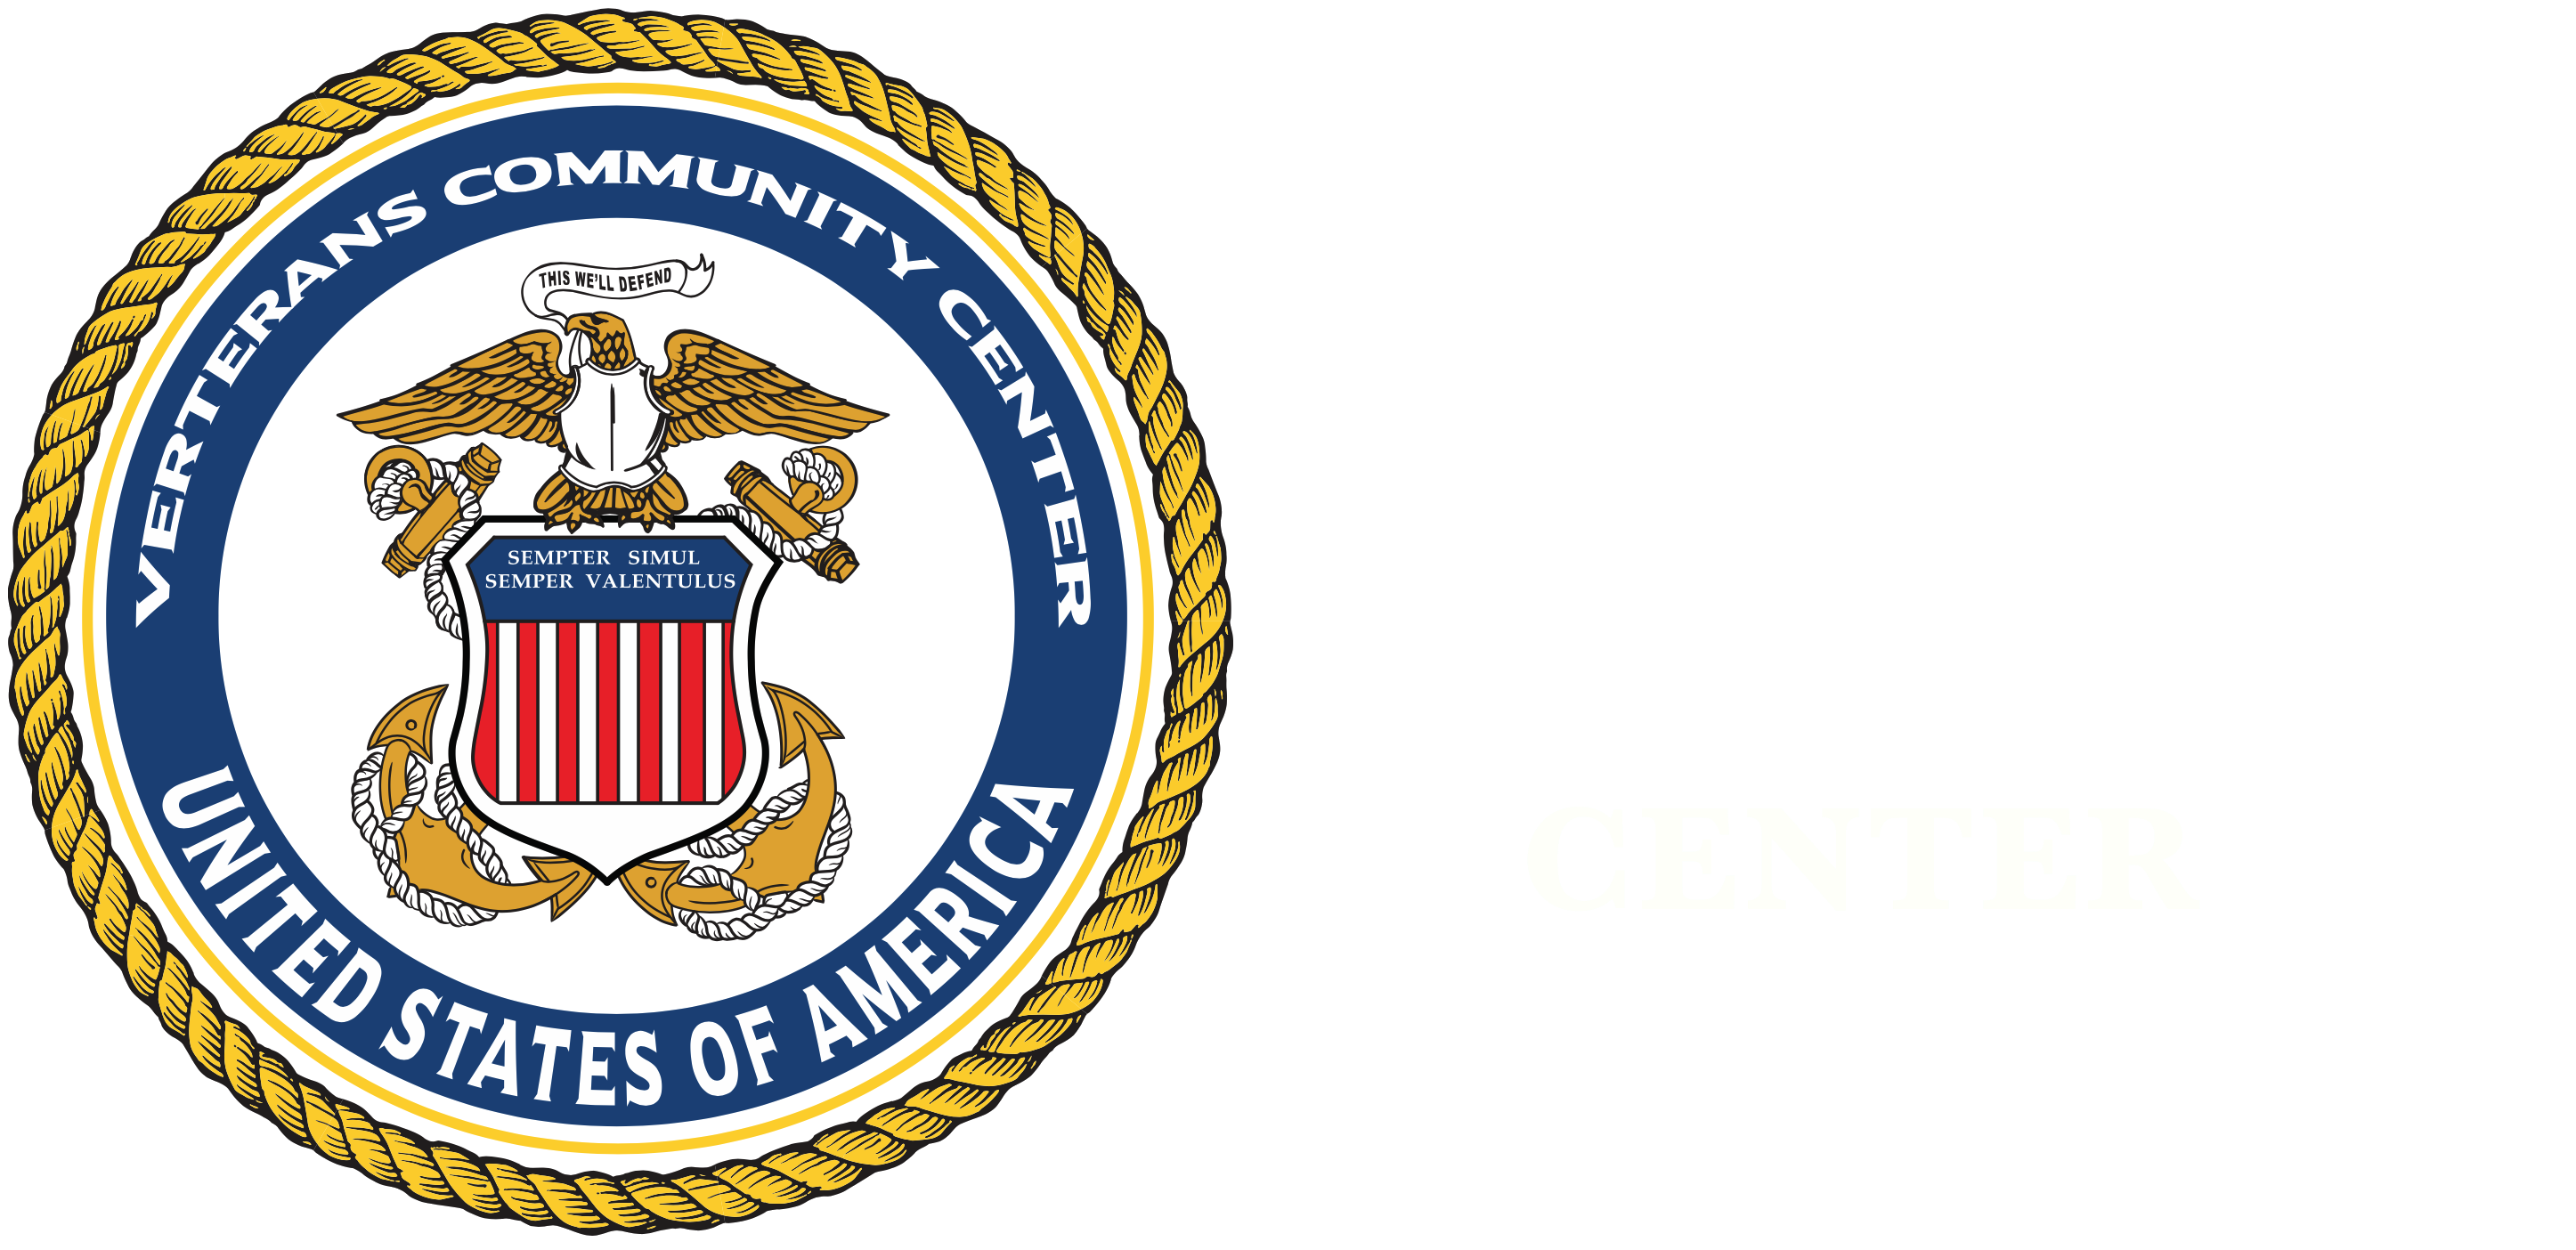 Vision clipart future scope. The veterans community center